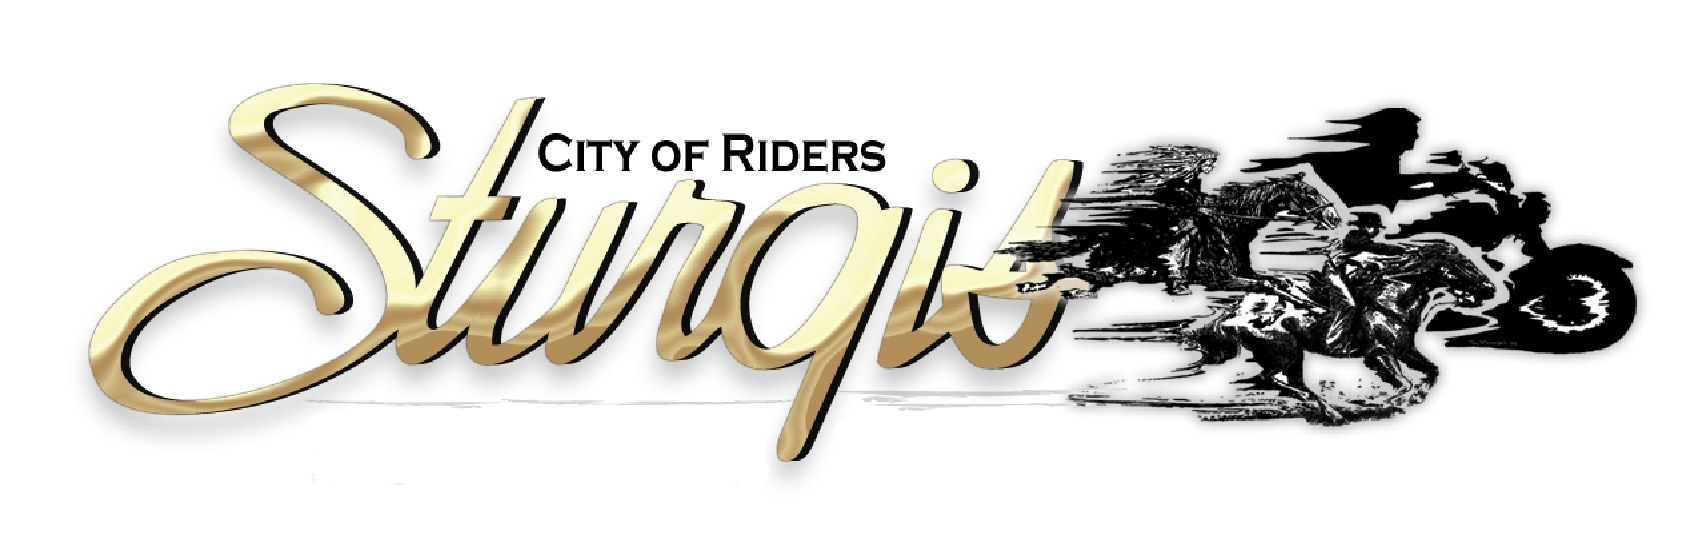 General City of Riders